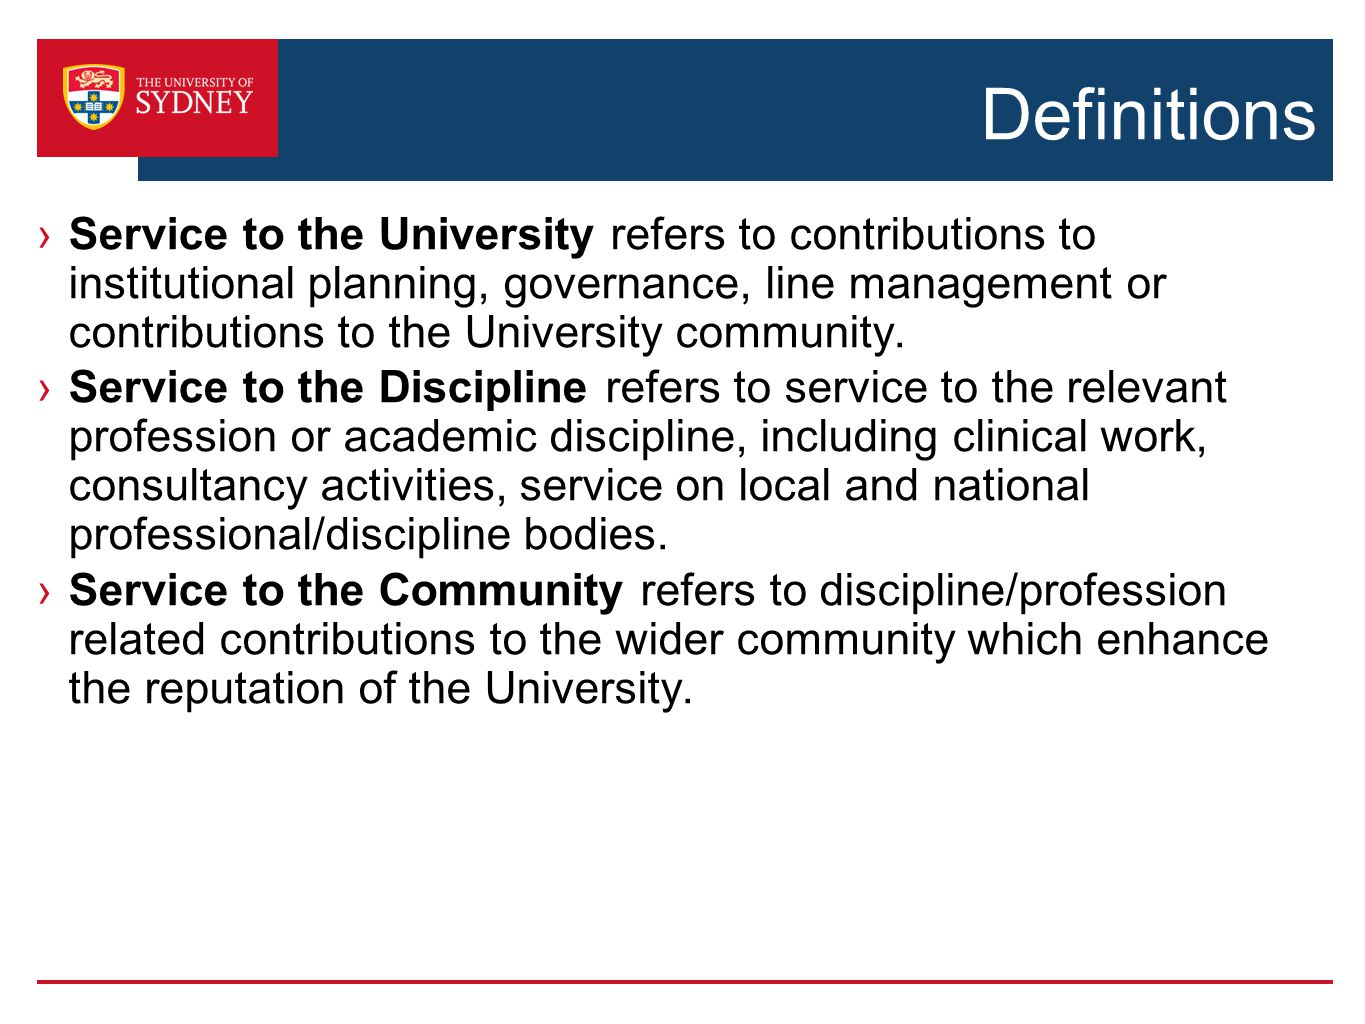 Definitions ›Service to the University refers to contributions to institutional planning, governance, line management or contributions to the University community.